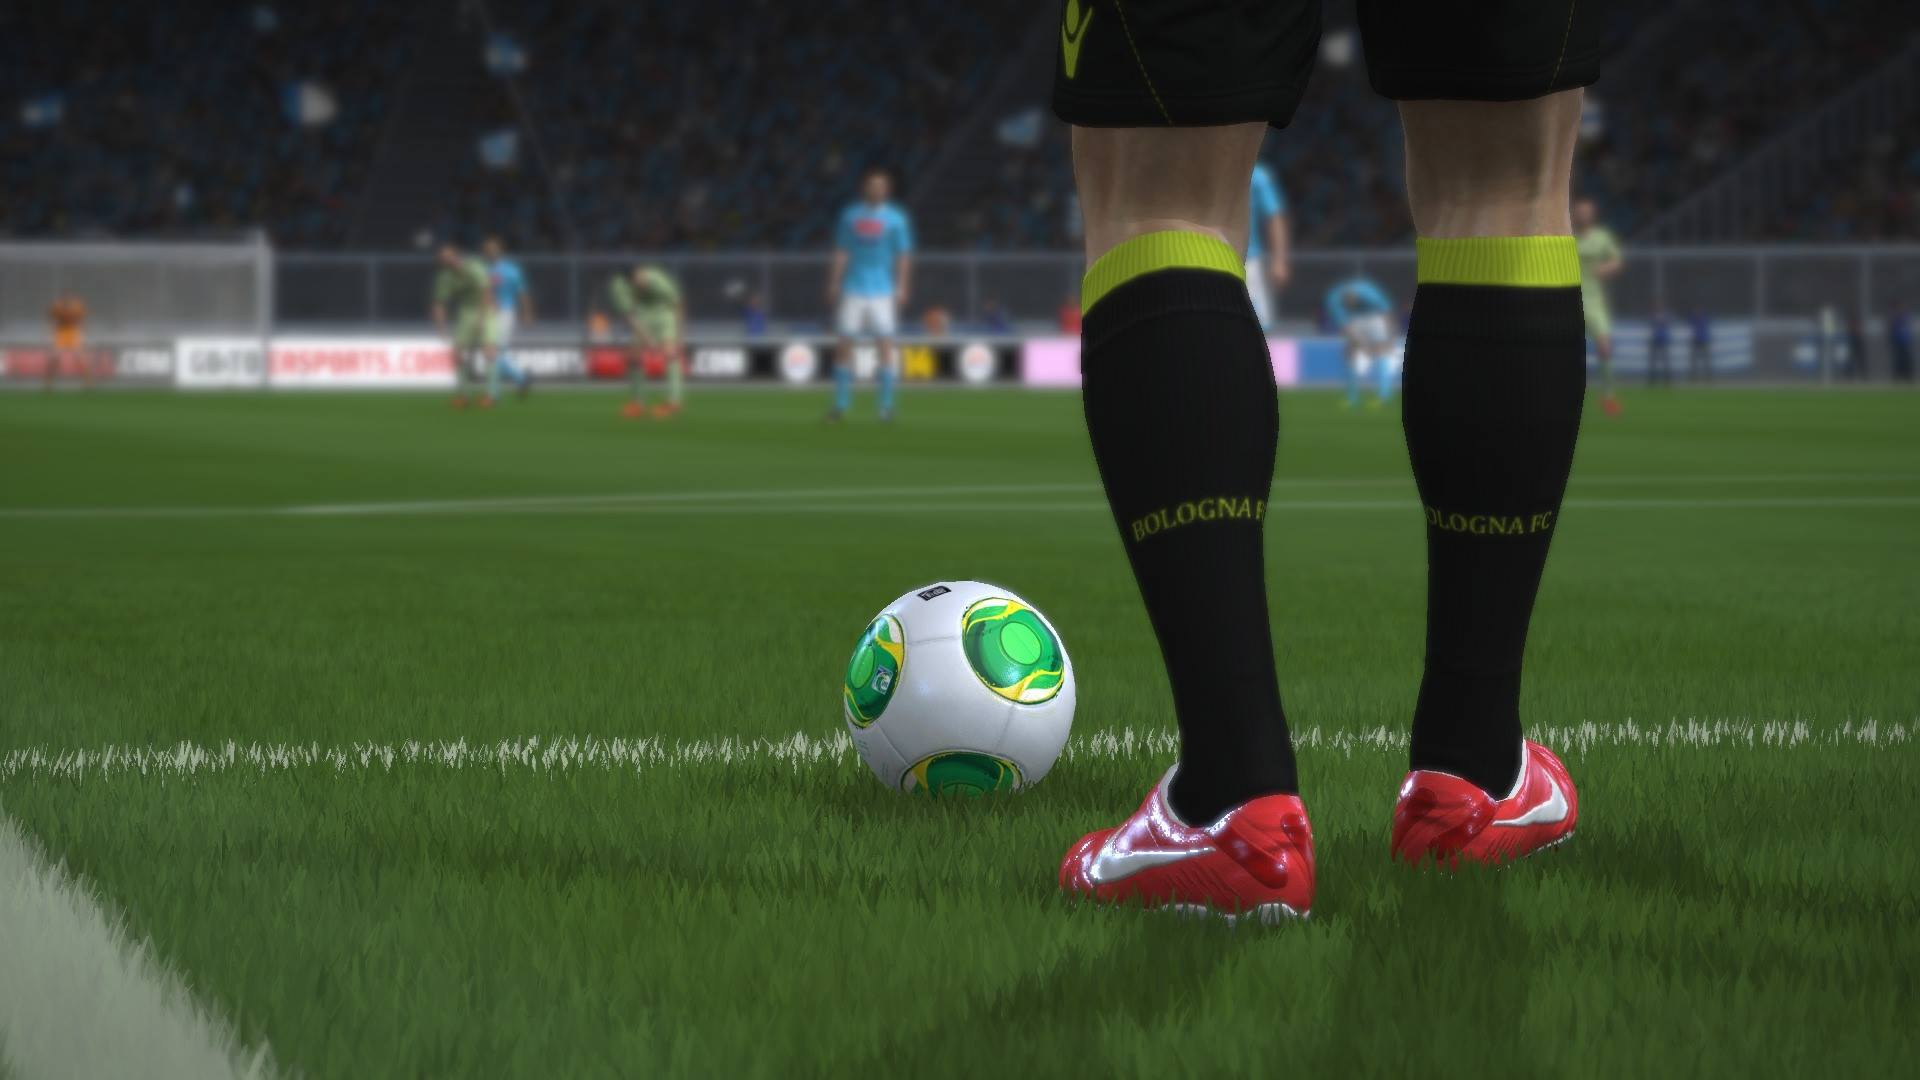 Fifa 14 full hd wallpaper and background image 1920x1080 id507711 video game fifa 14 wallpaper voltagebd Choice Image